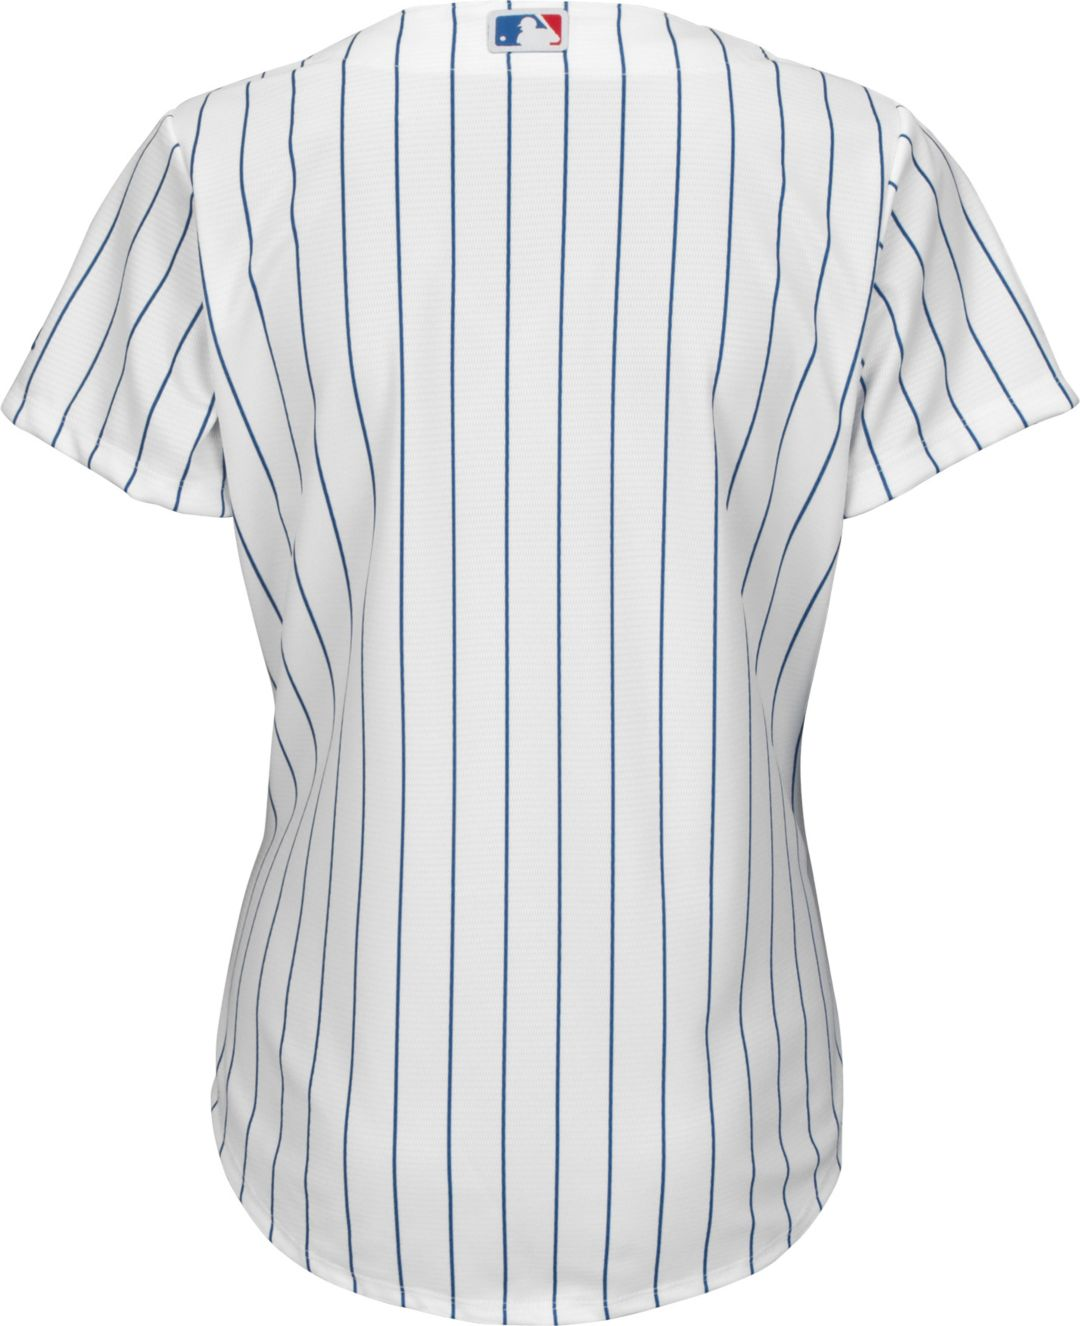 buy popular 011ba 54117 Majestic Women's Replica Chicago Cubs Cool Base Home White Jersey